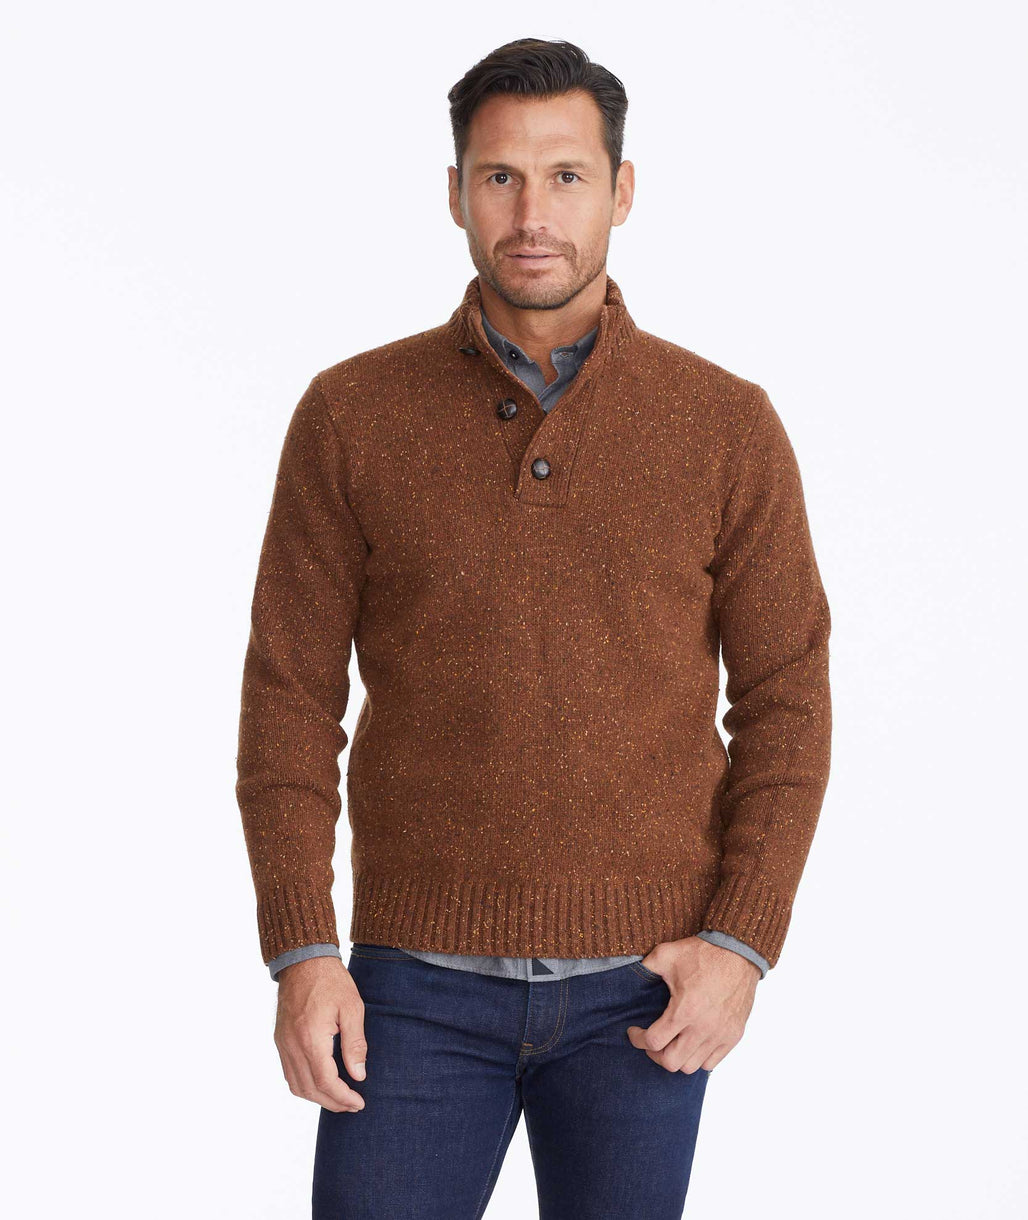 Model wearing a Brown Button-Neck Donegal Sweater